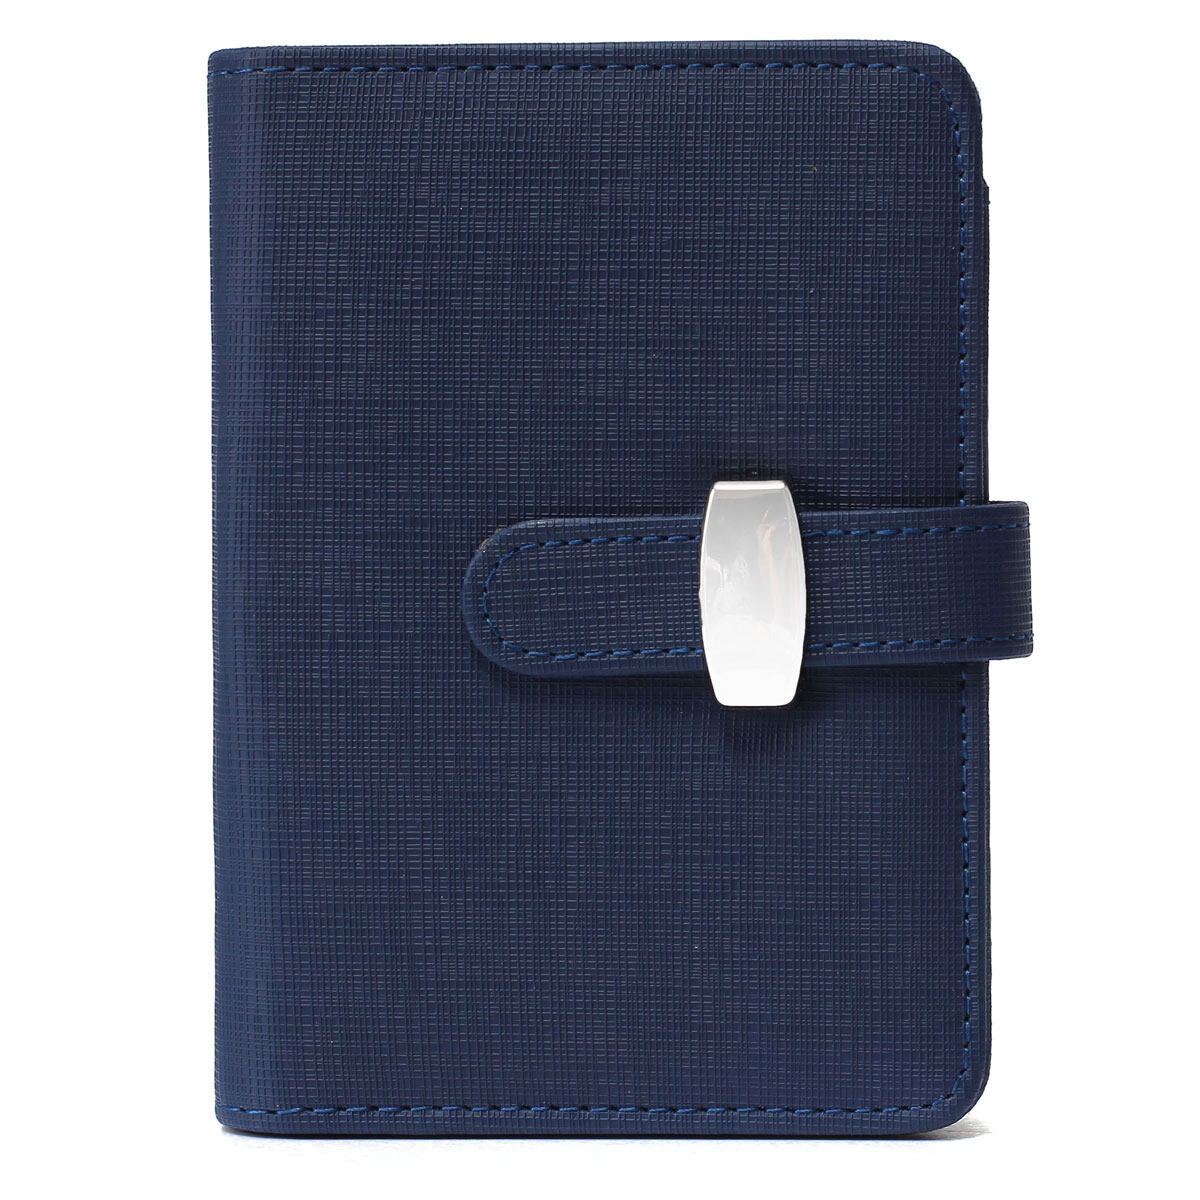 Mua Personal Pocket Organiser Planner PU Leather Cover Filofax Diary Notebook Blue - intl